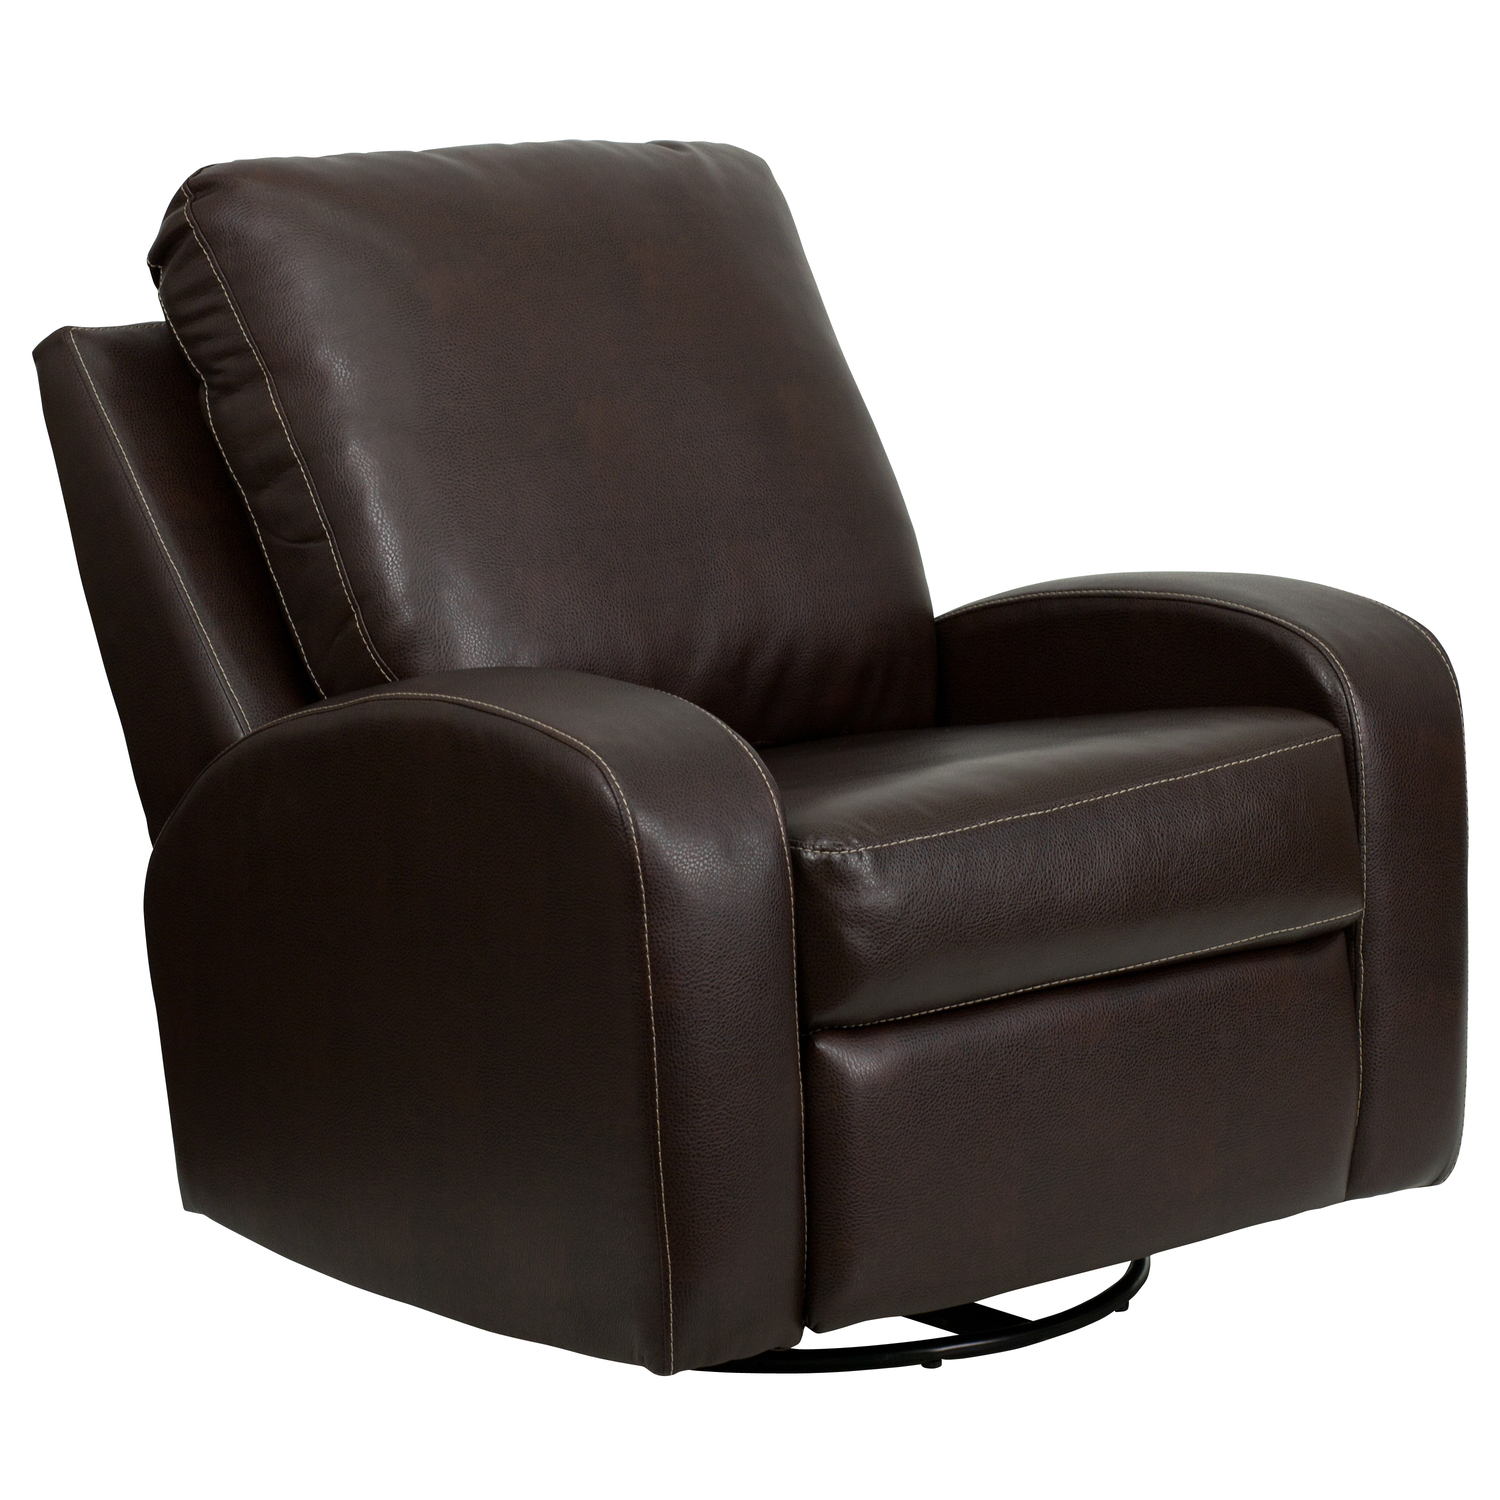 Flash Contemporary Thomas Leather Swivel Glider Recliner